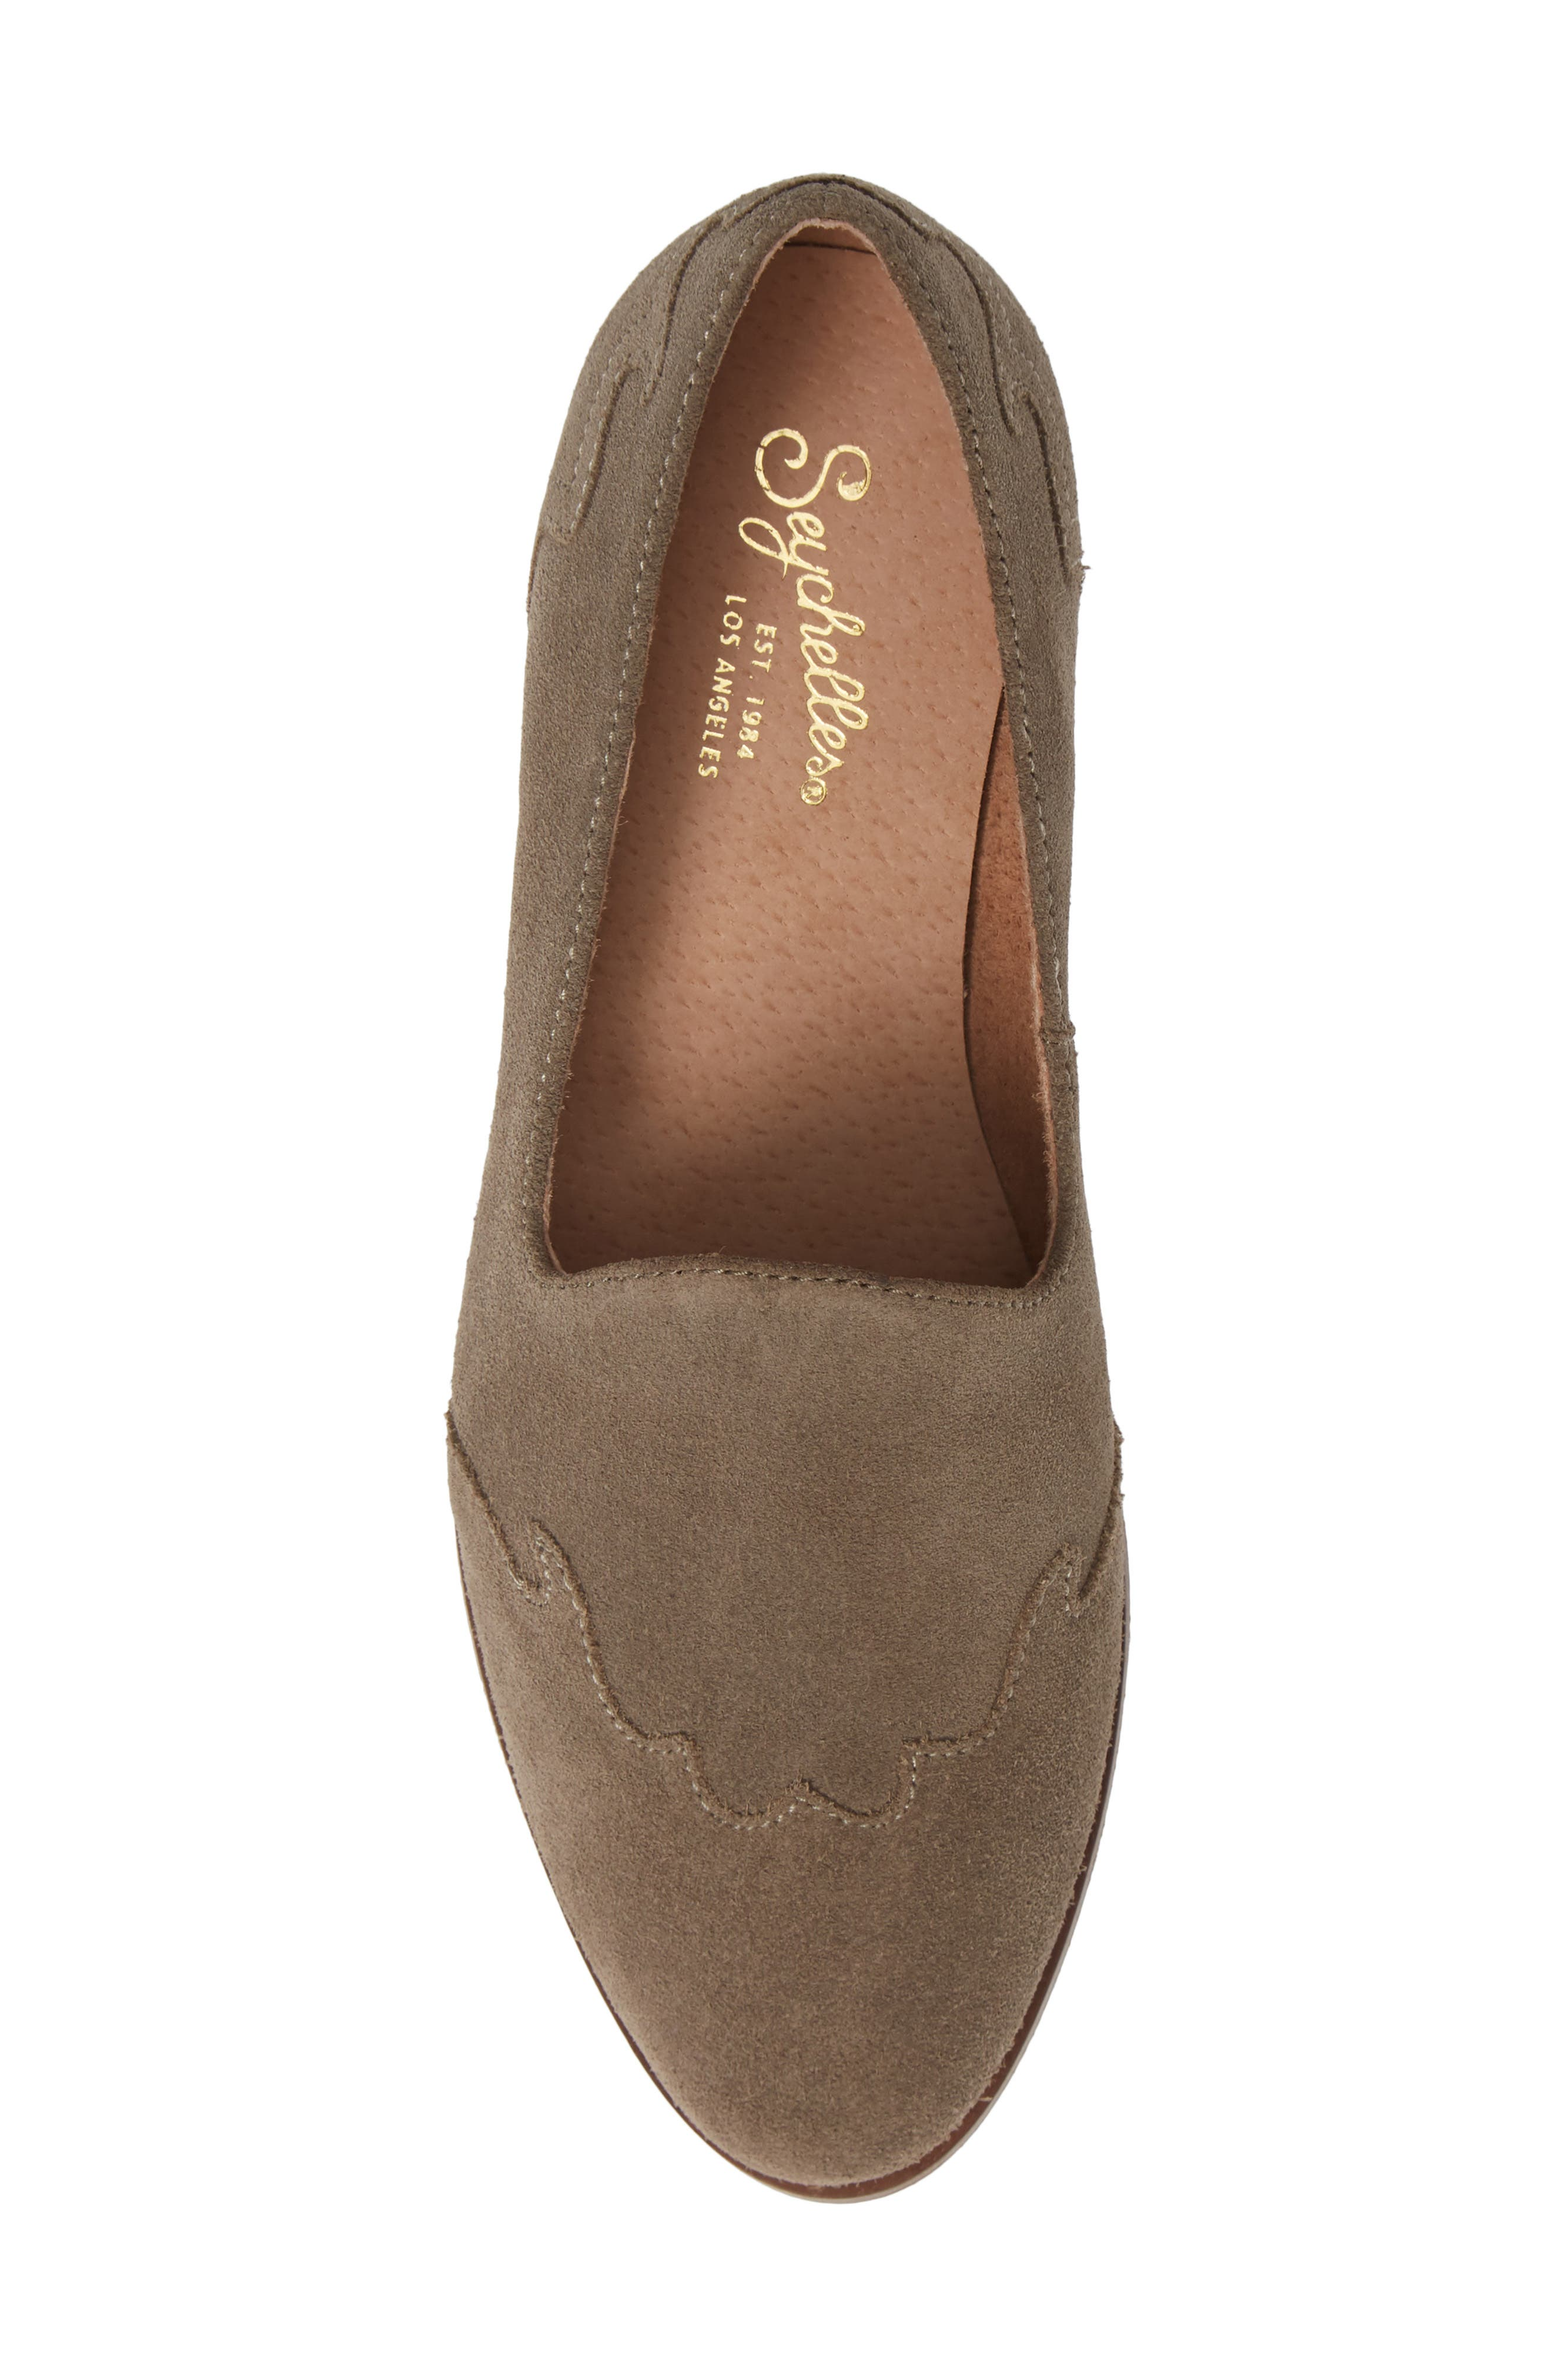 Revolution Loafer,                             Alternate thumbnail 5, color,                             TAUPE SUEDE